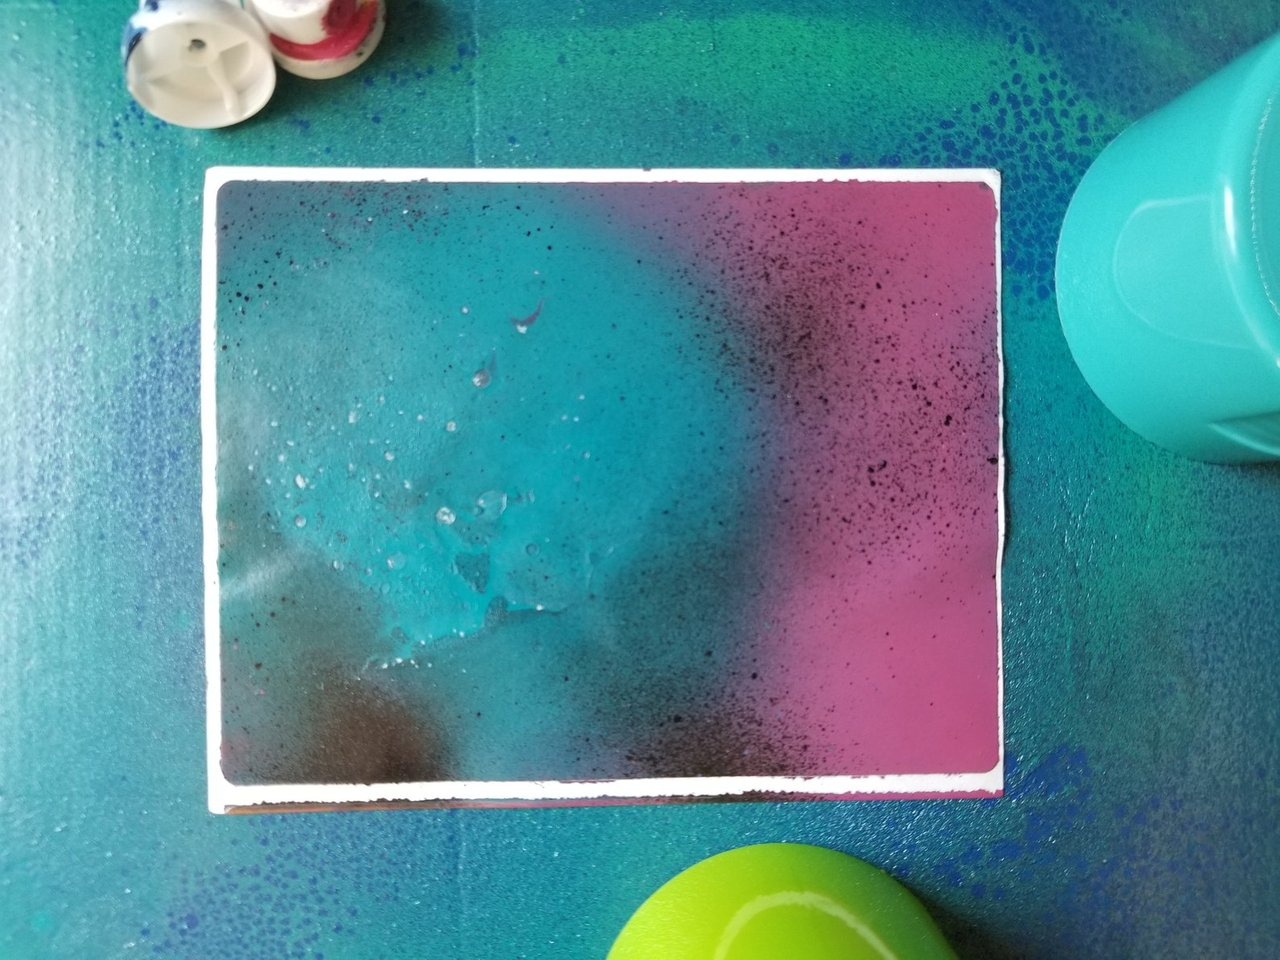 New Photo Abstract Painting #3 Sticker Spray paint on sticker paper. 2021